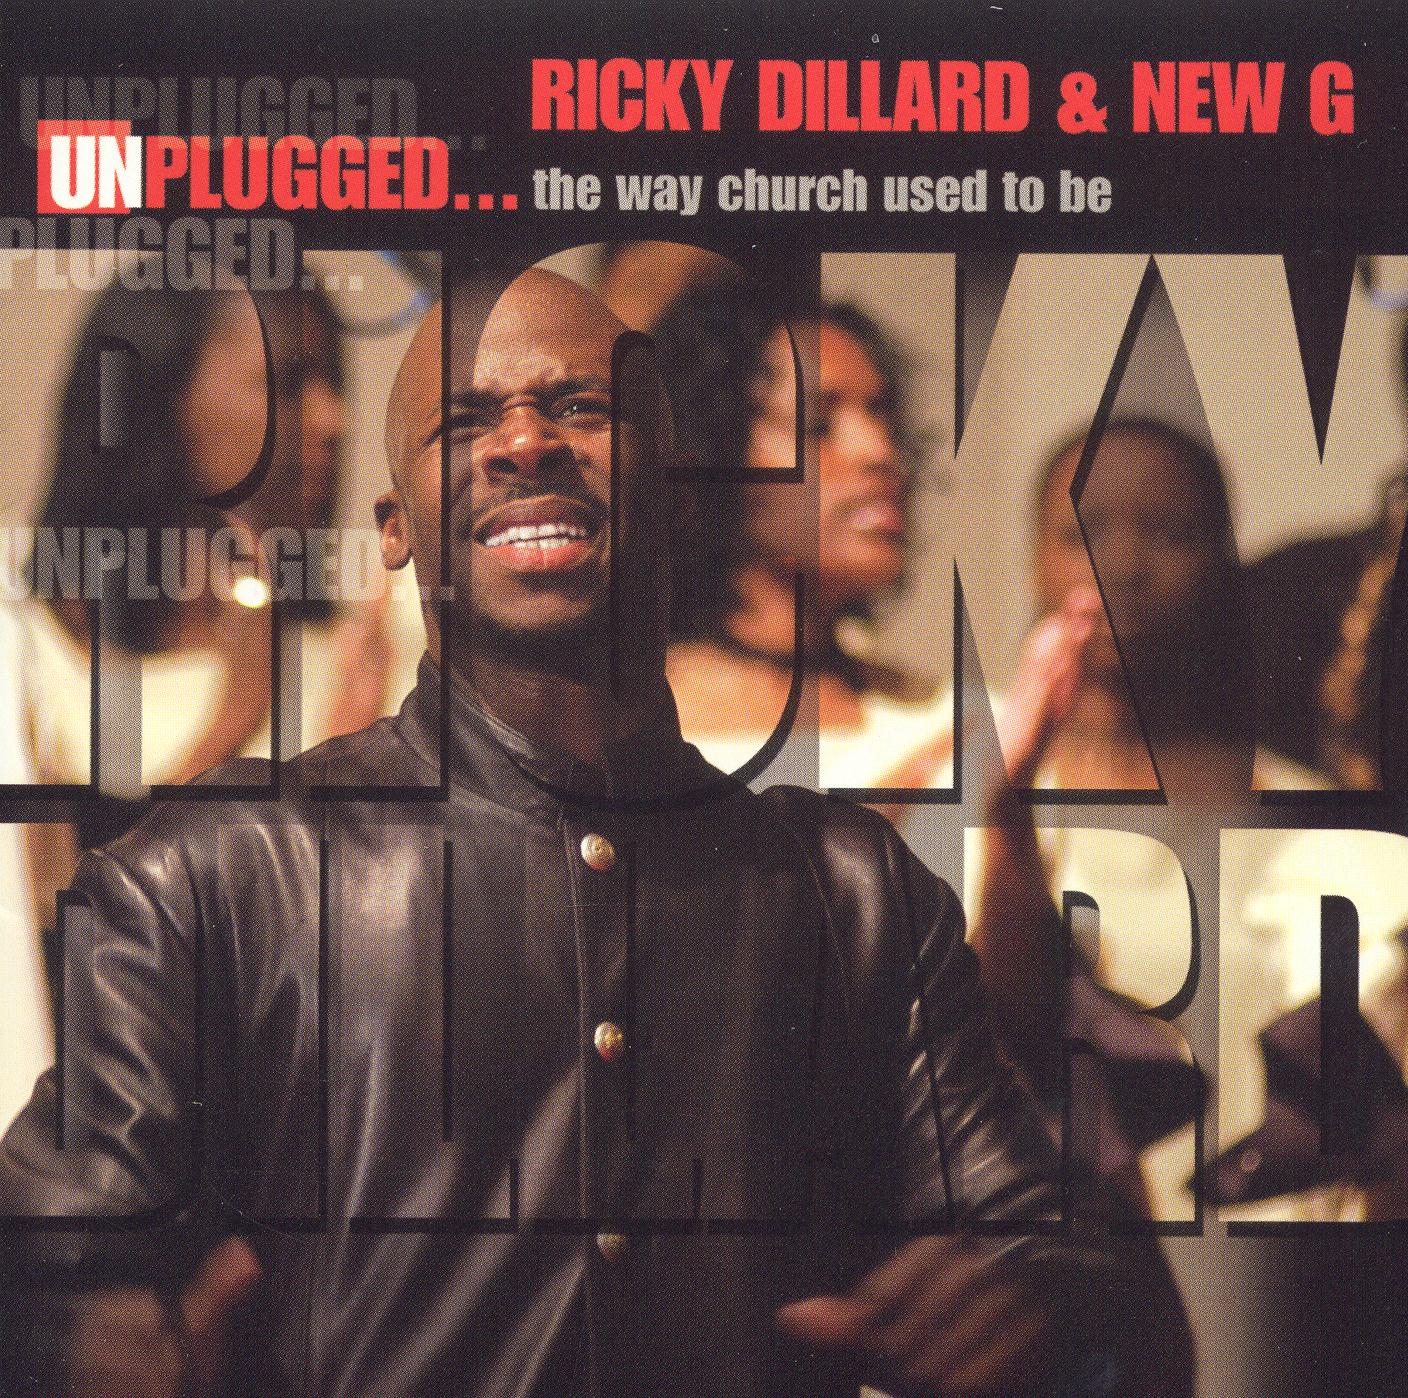 Ricky Dillard & New G: Unplugged - The Way Church Used to Be - Live in Chicago